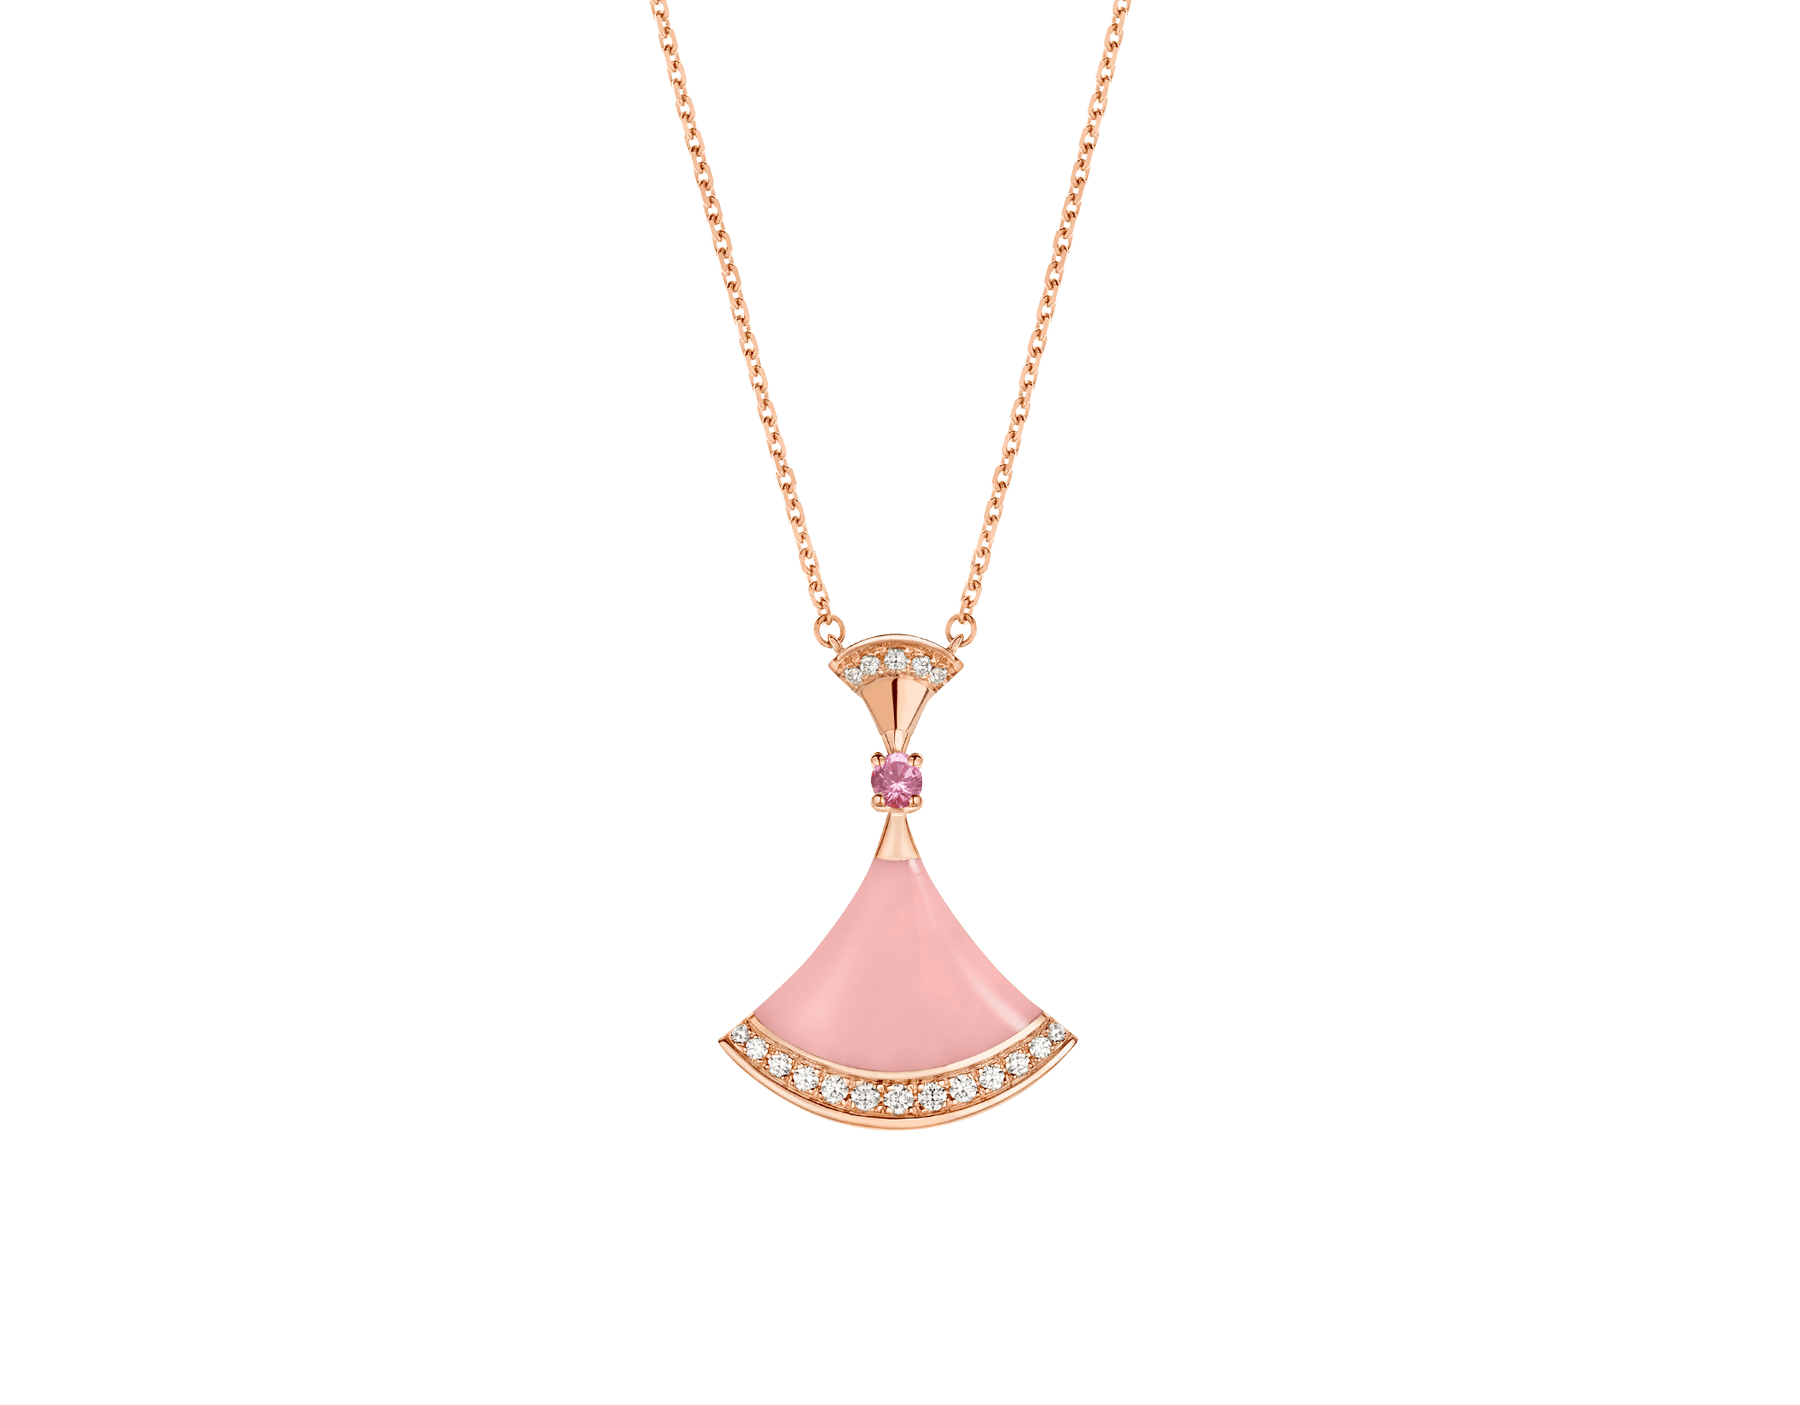 DIVAS' DREAM 18 kt rose gold pendant necklace set with a pink opal insert, a pink sapphire and pavé diamonds. Chinese Valentine's Day Special Edition 358131 image 1